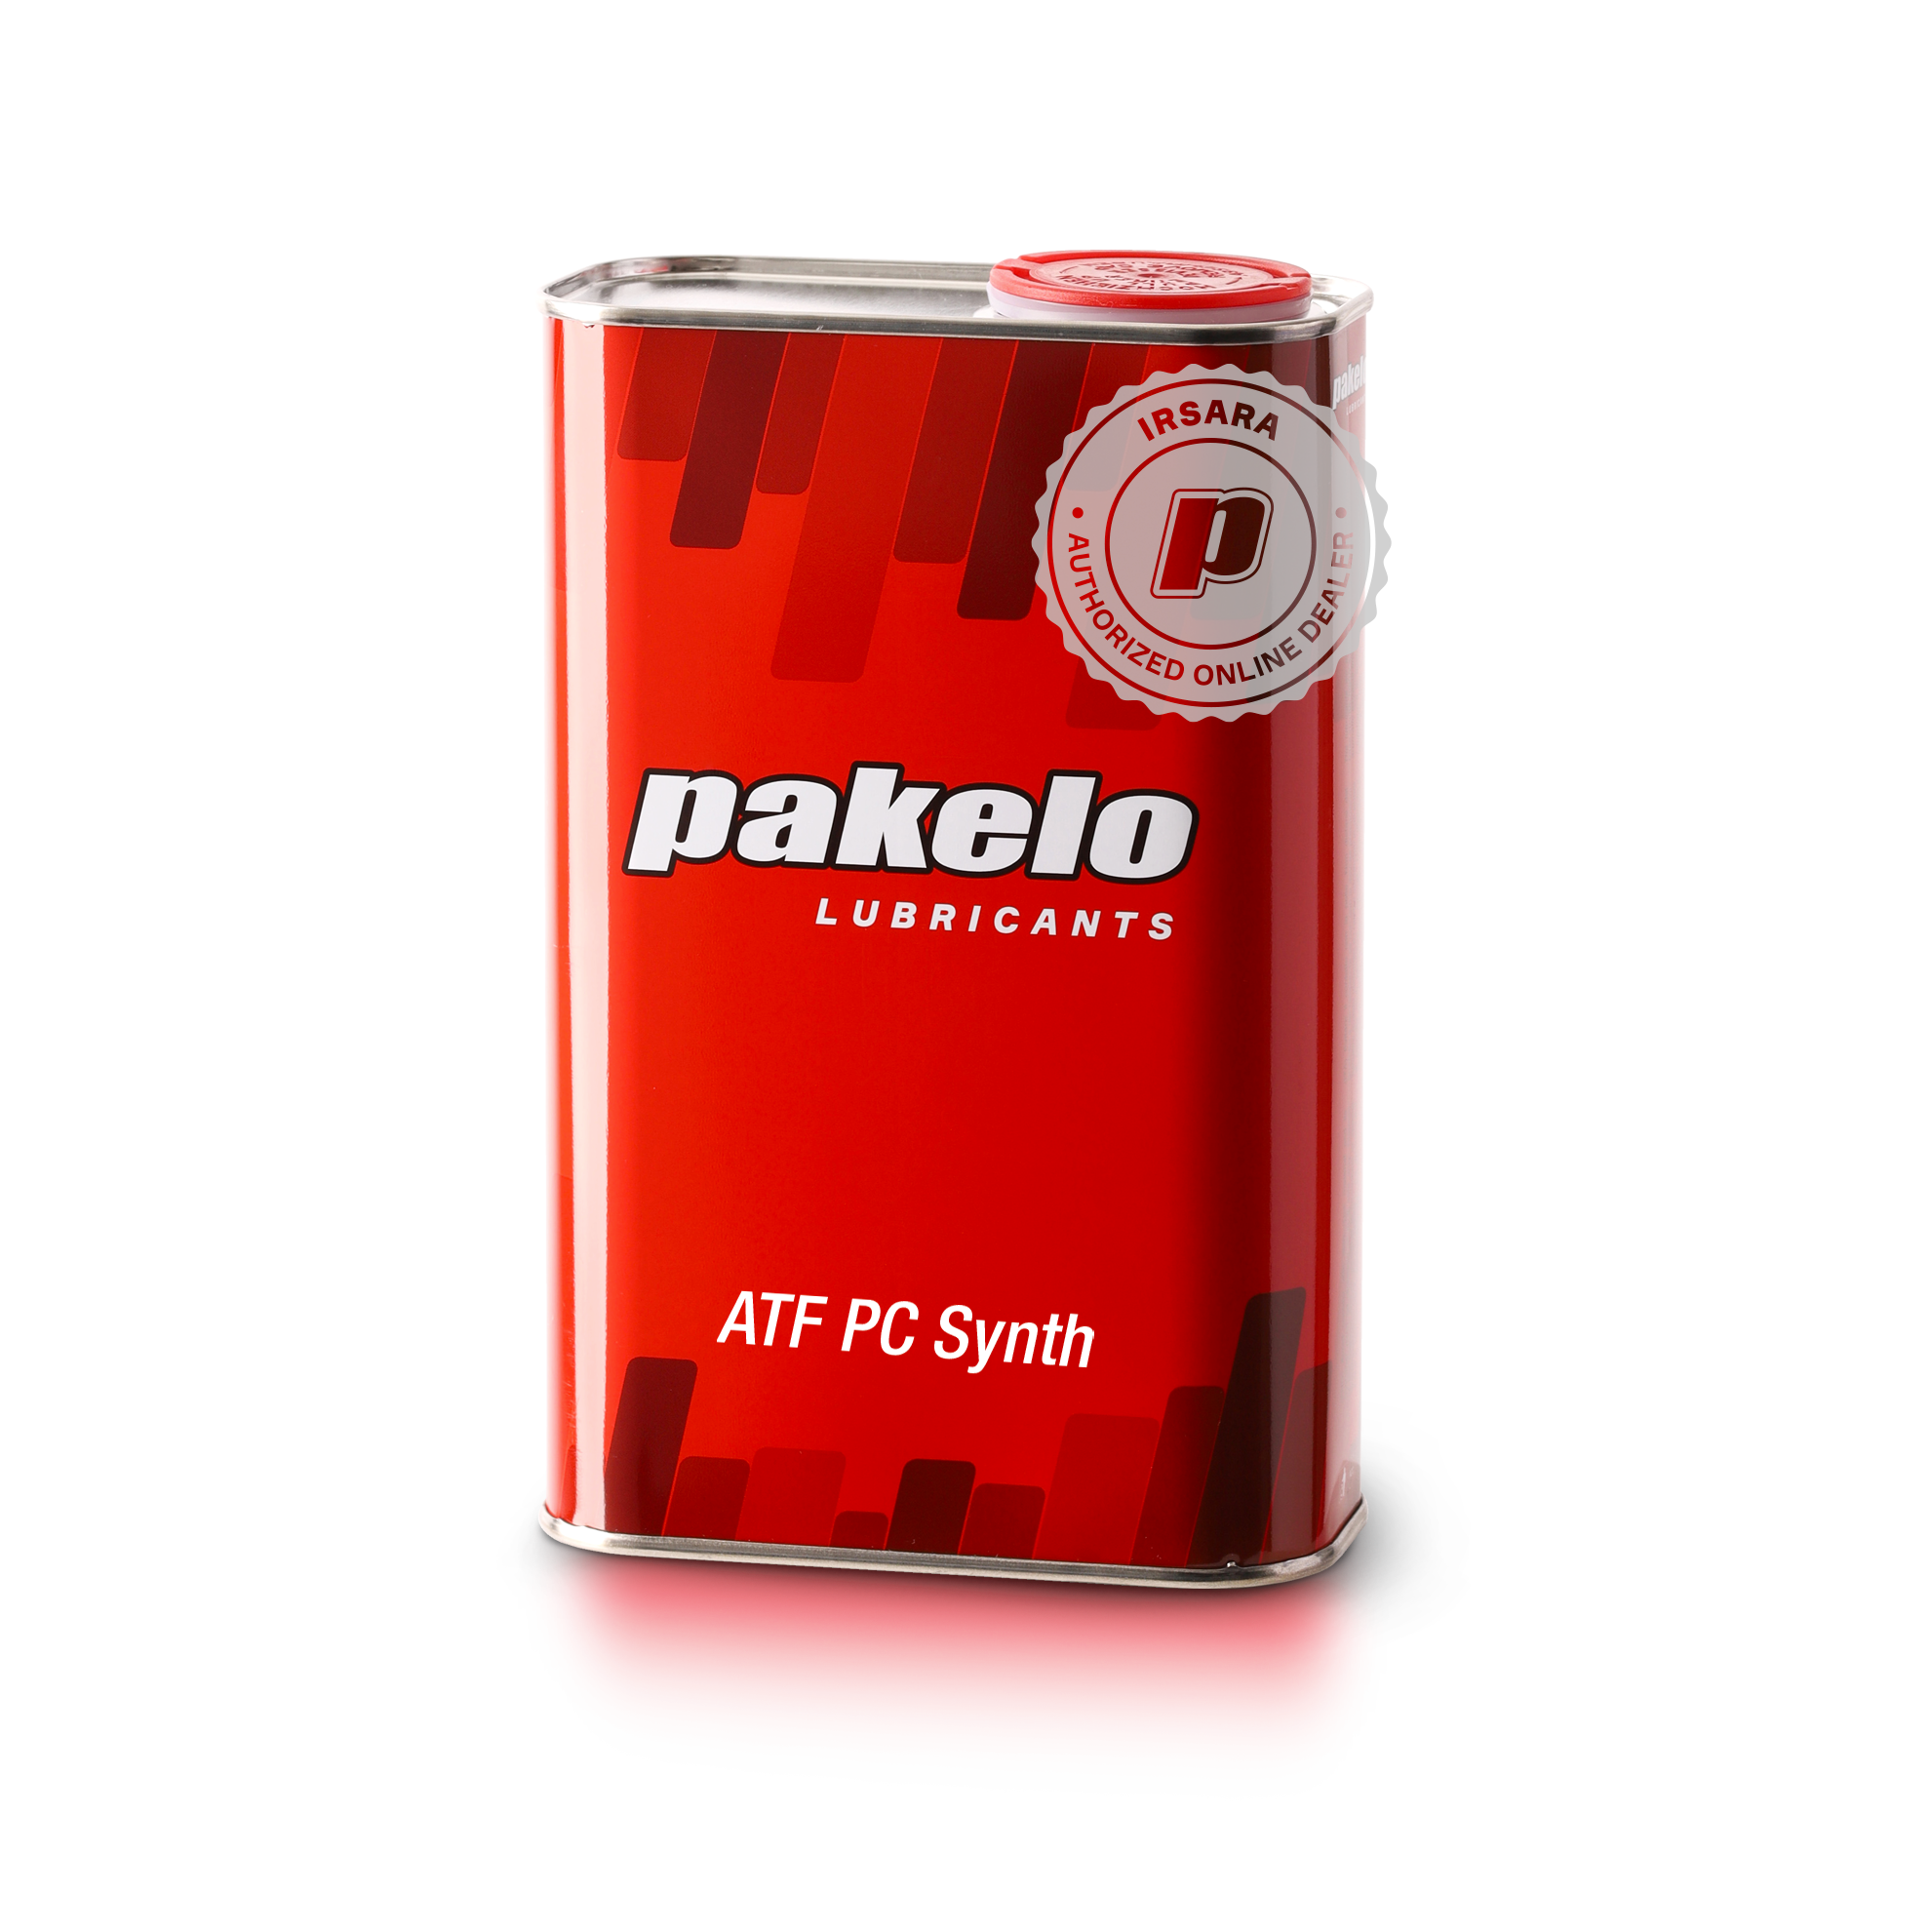 Pakelo Atf Pc Synth (1 Lt)